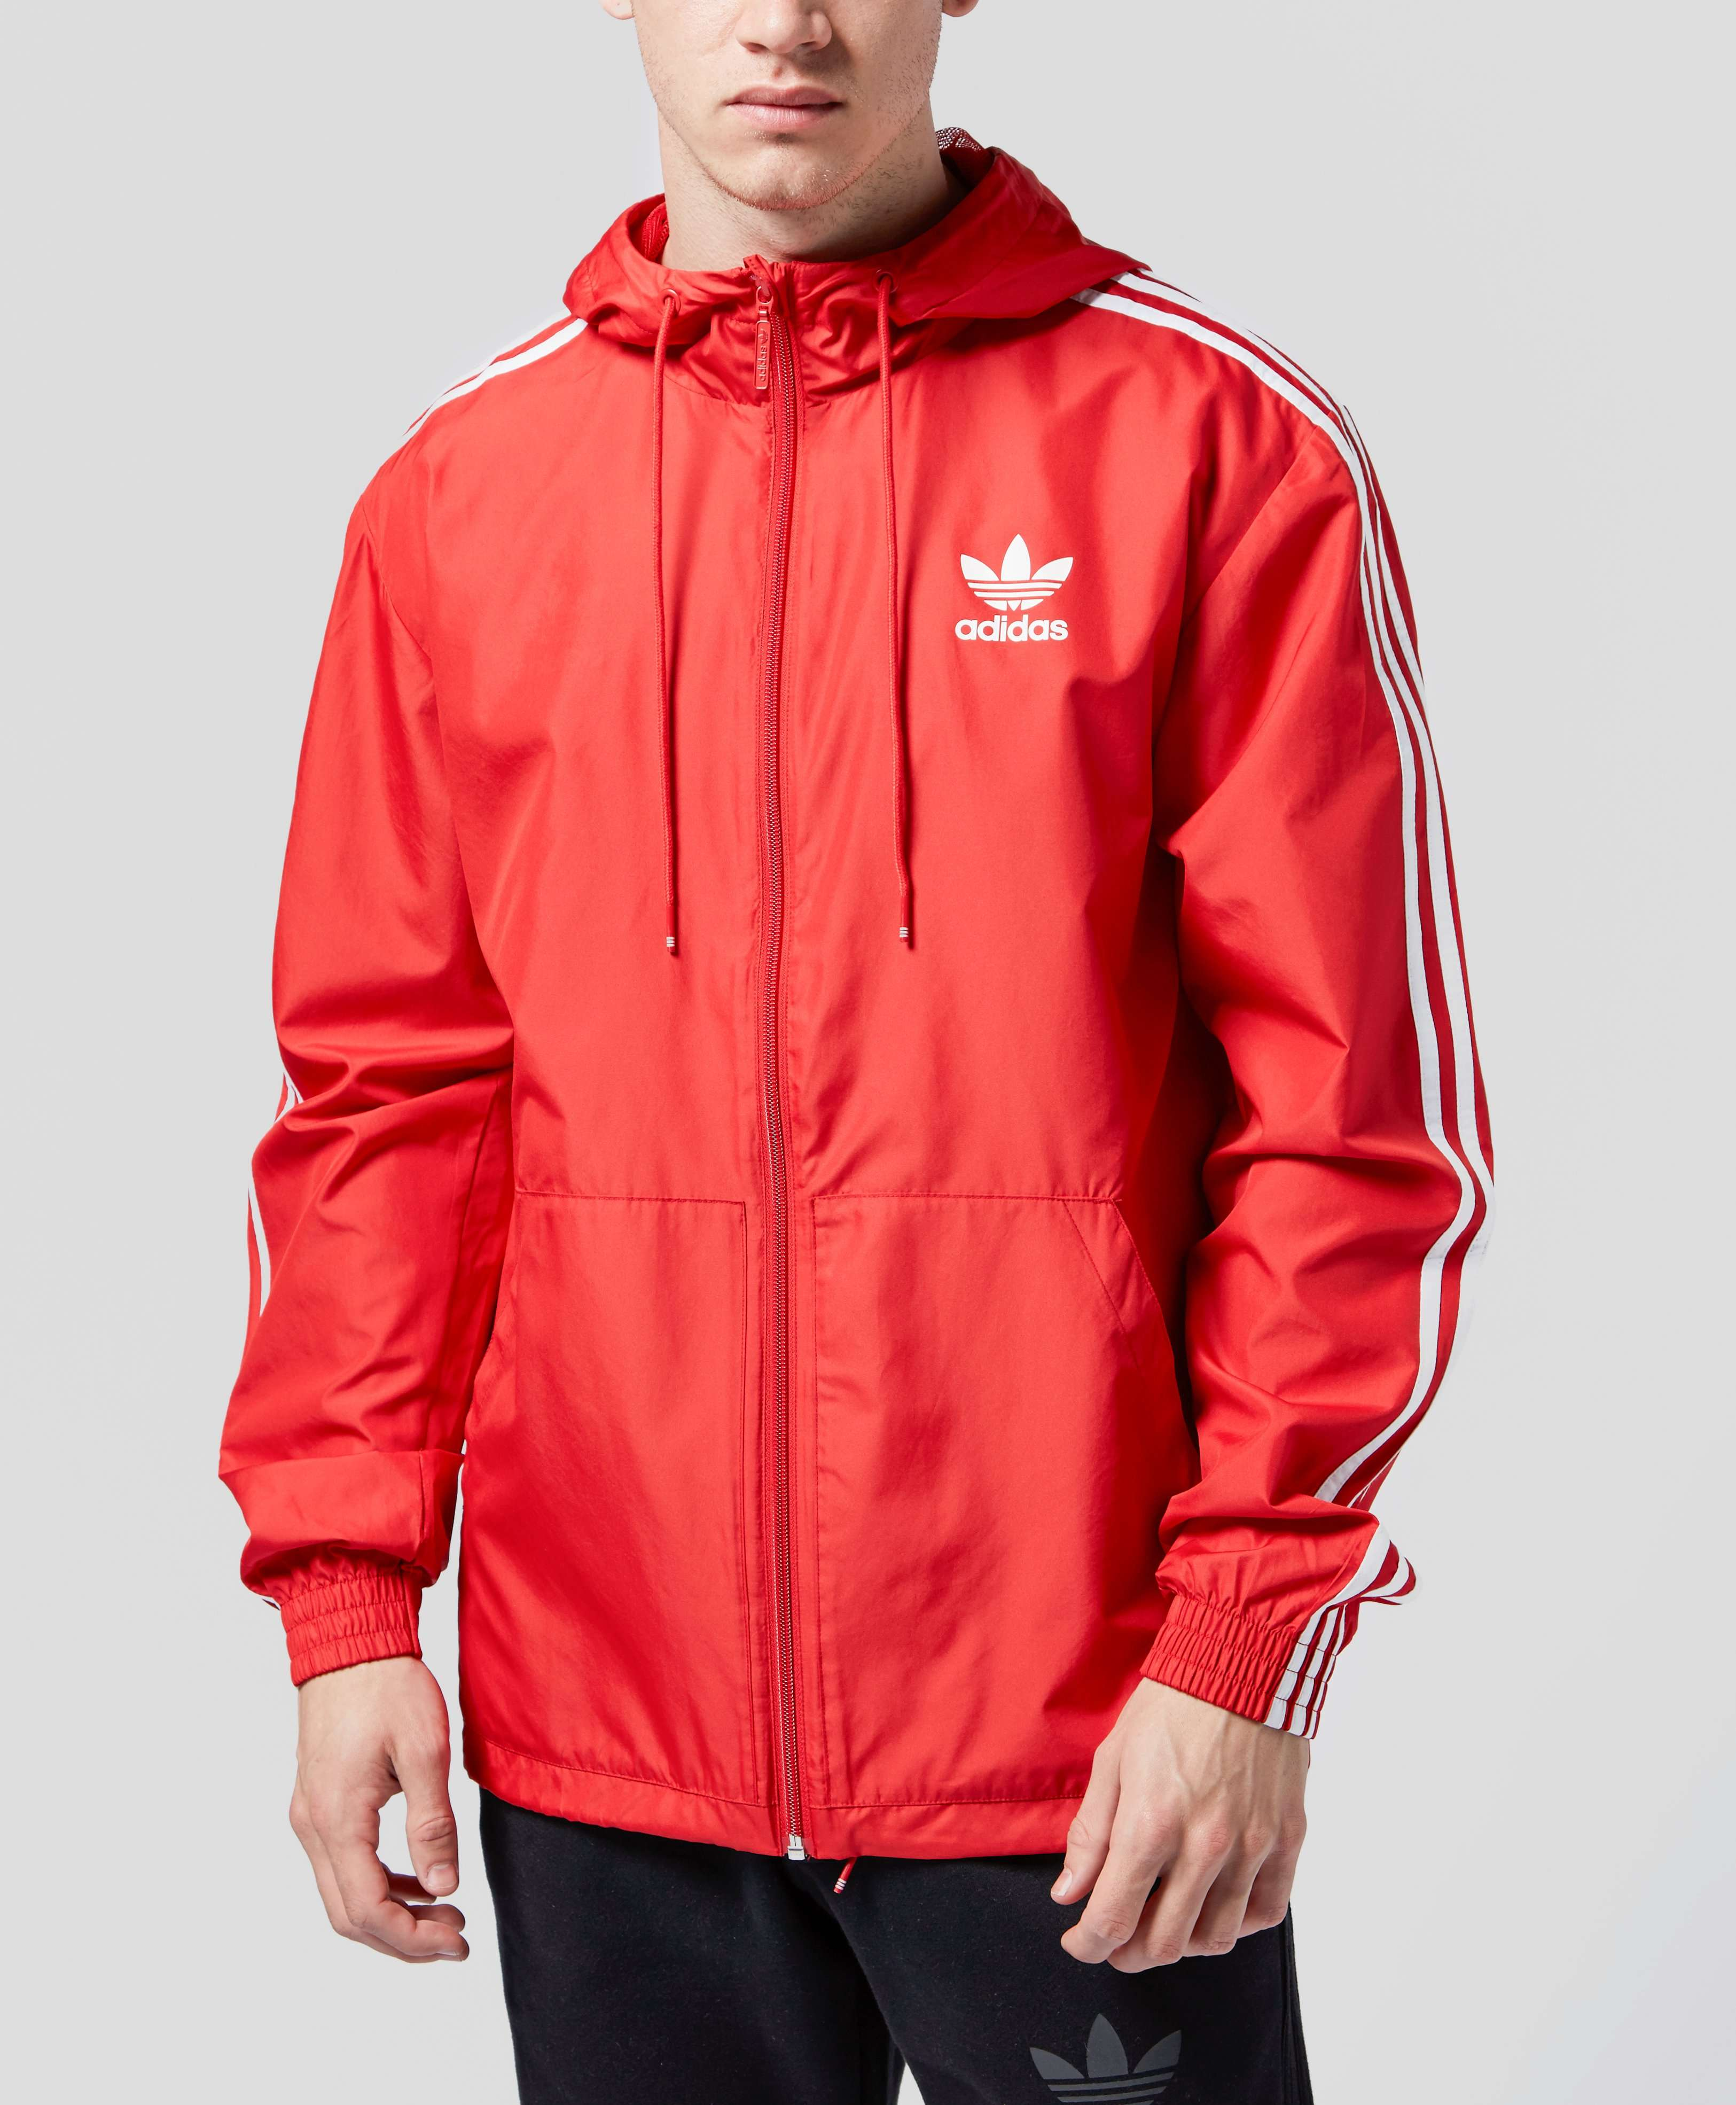 Adidas Originals Itasca Jacket Scotts Menswear